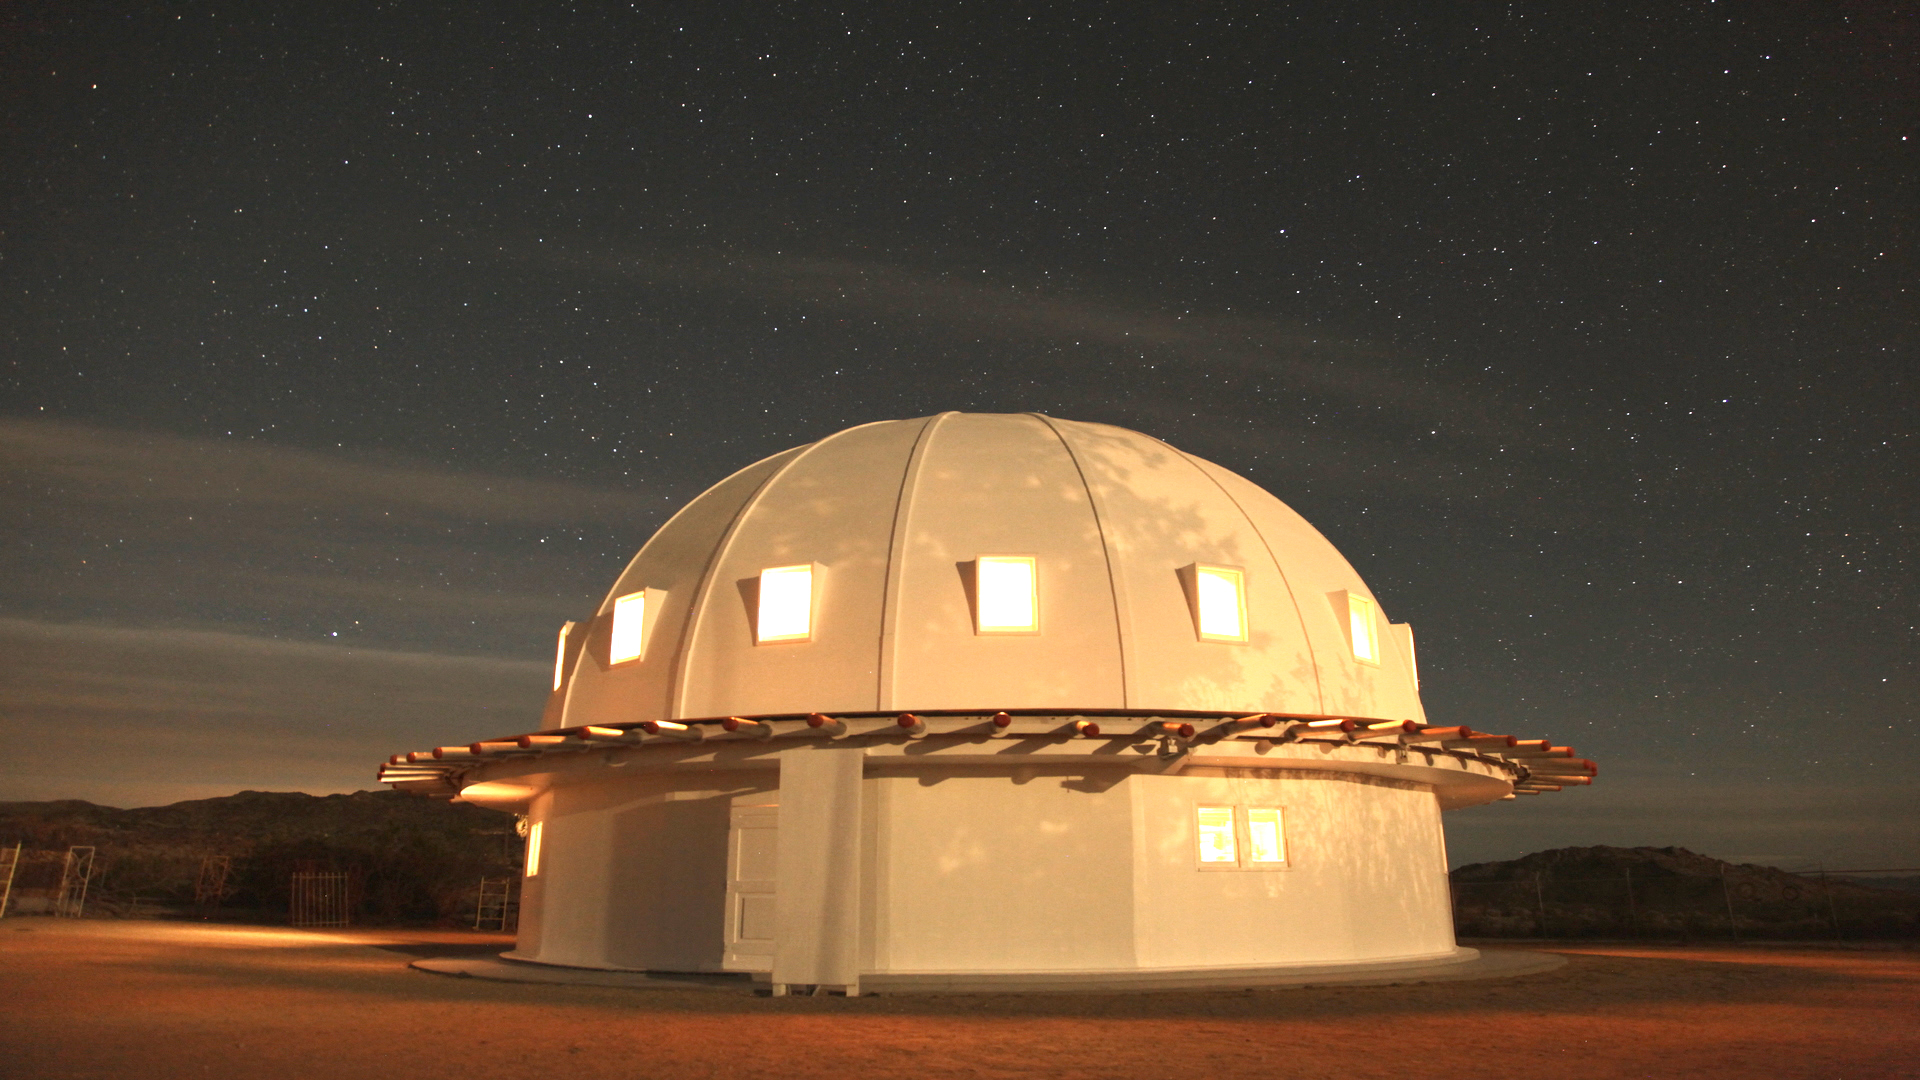 Documentary by CSUSM professor tackles UFOs, SoCal history